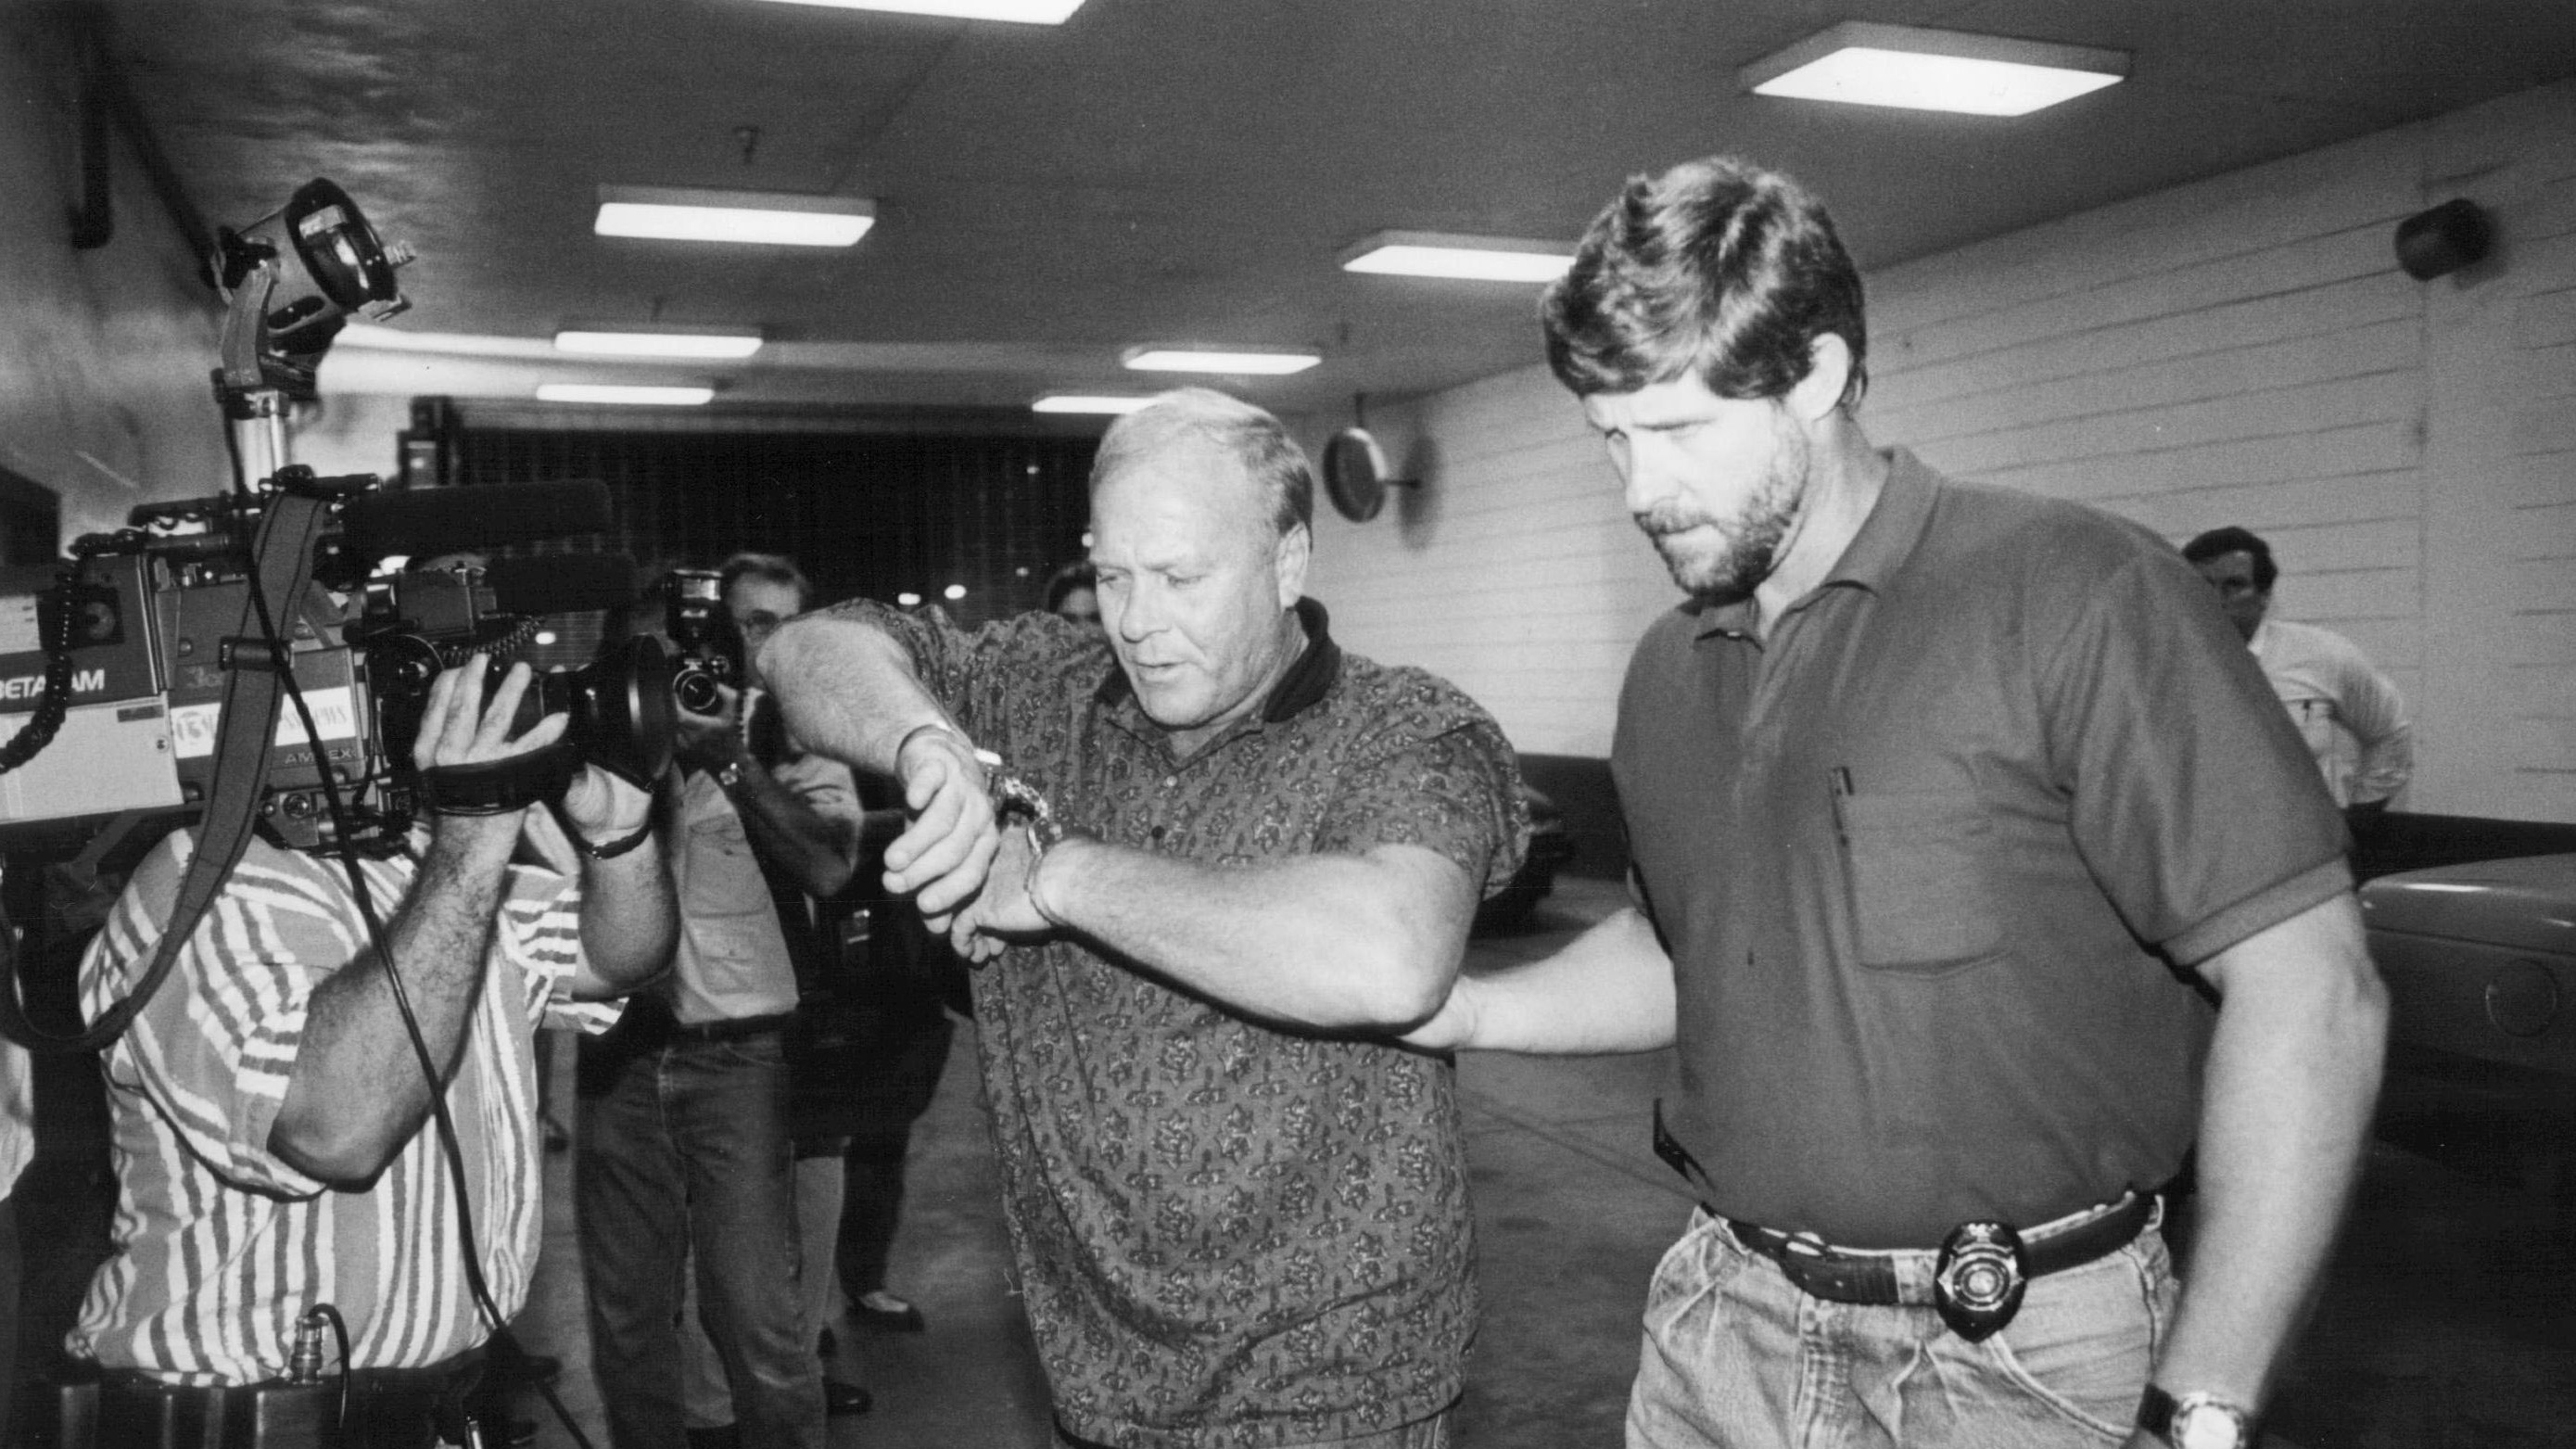 From 2011: Execution set for Oba Chandler in 1989 murders of